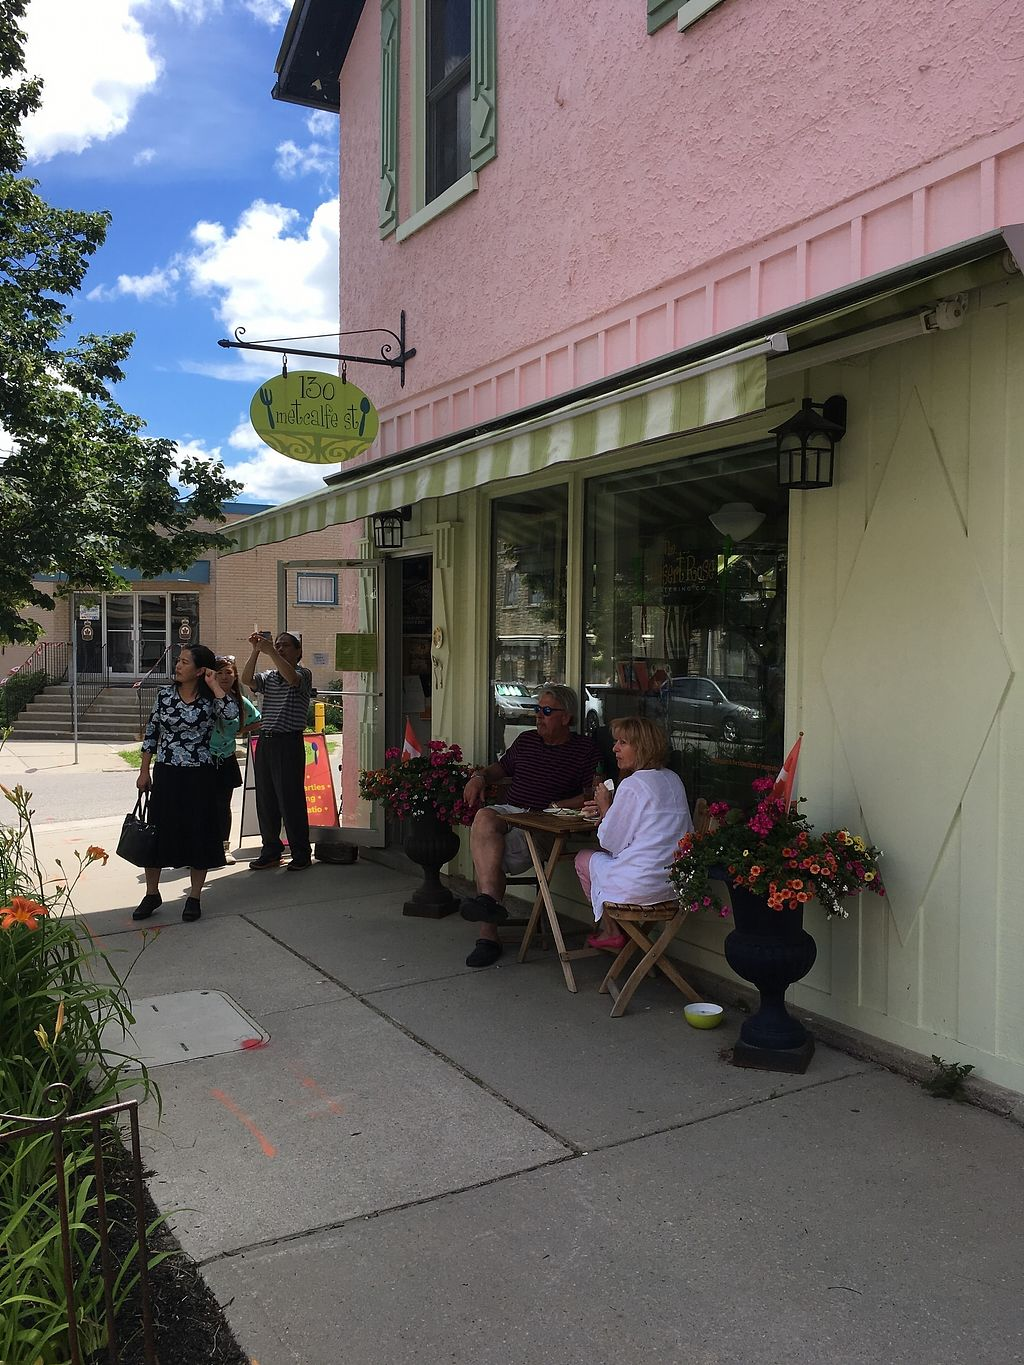 "Photo of Desert Rose Cafe  by <a href=""/members/profile/Cat_Mamma"">Cat_Mamma</a> <br/>Storefront <br/> July 4, 2017  - <a href='/contact/abuse/image/64661/276510'>Report</a>"